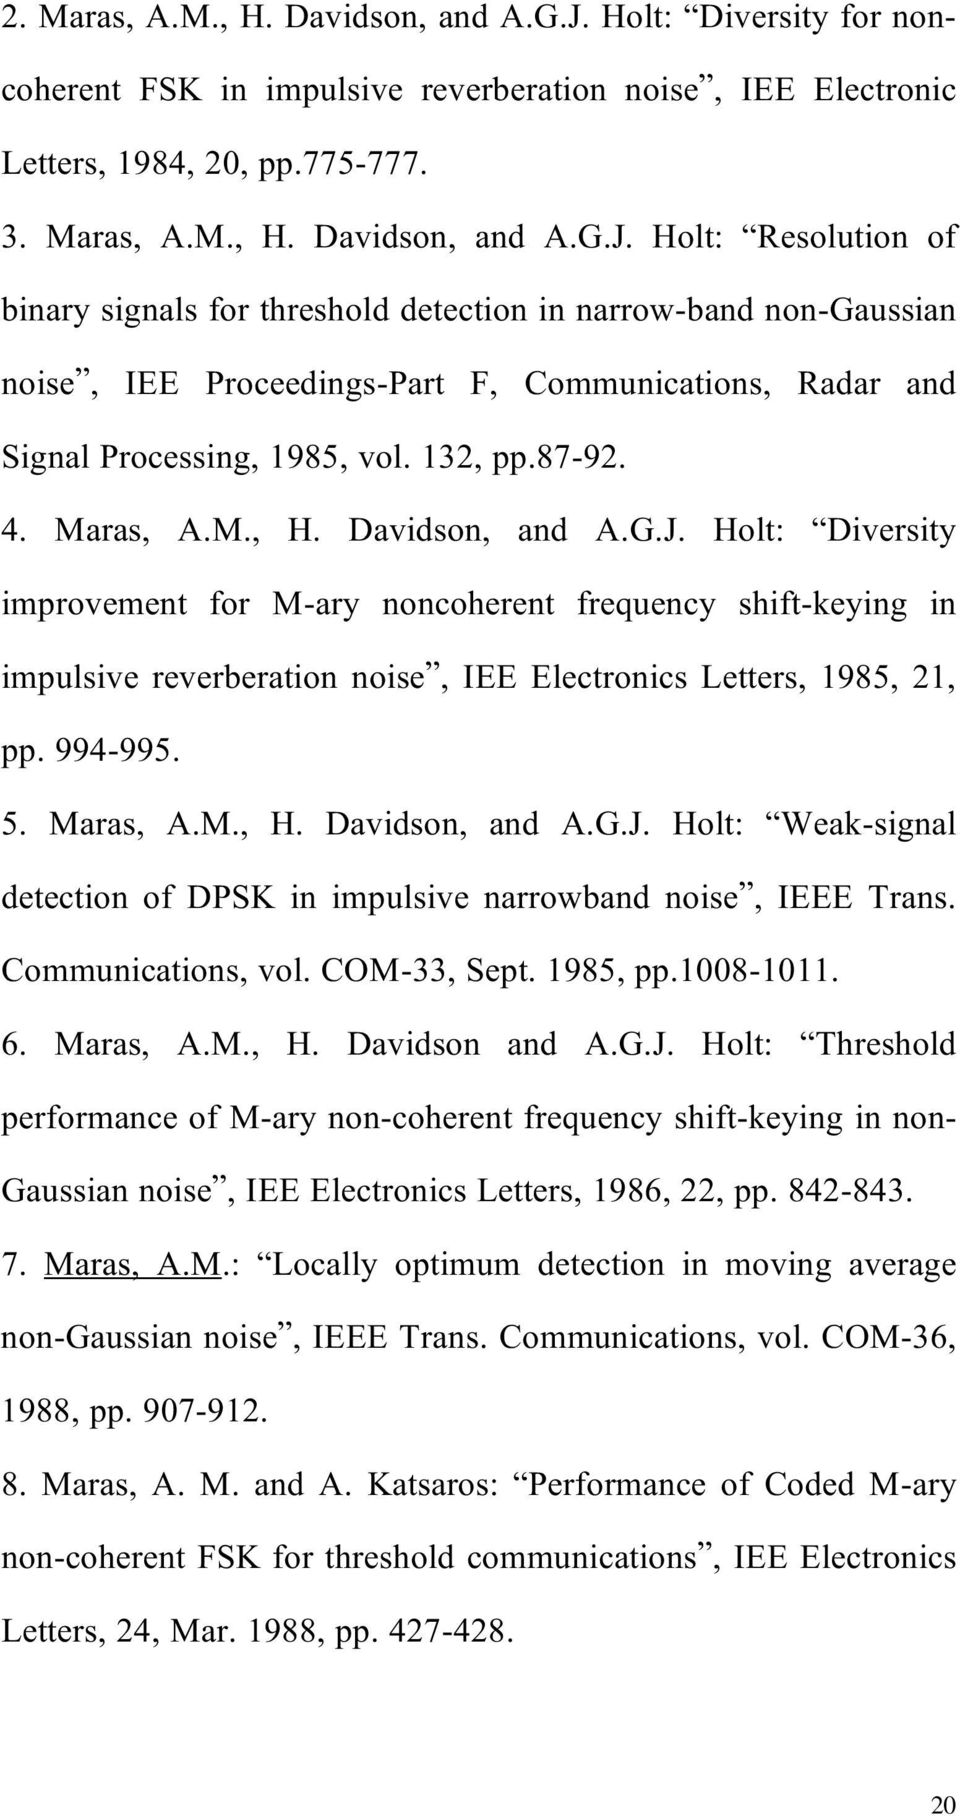 Holt: Resolution of binary signals for threshold detection in narrow-band non-gaussian noise, IEE Proceedings-Part F, Communications, Radar and Signal Processing, 1985, vol. 132, pp.87-92. 4.